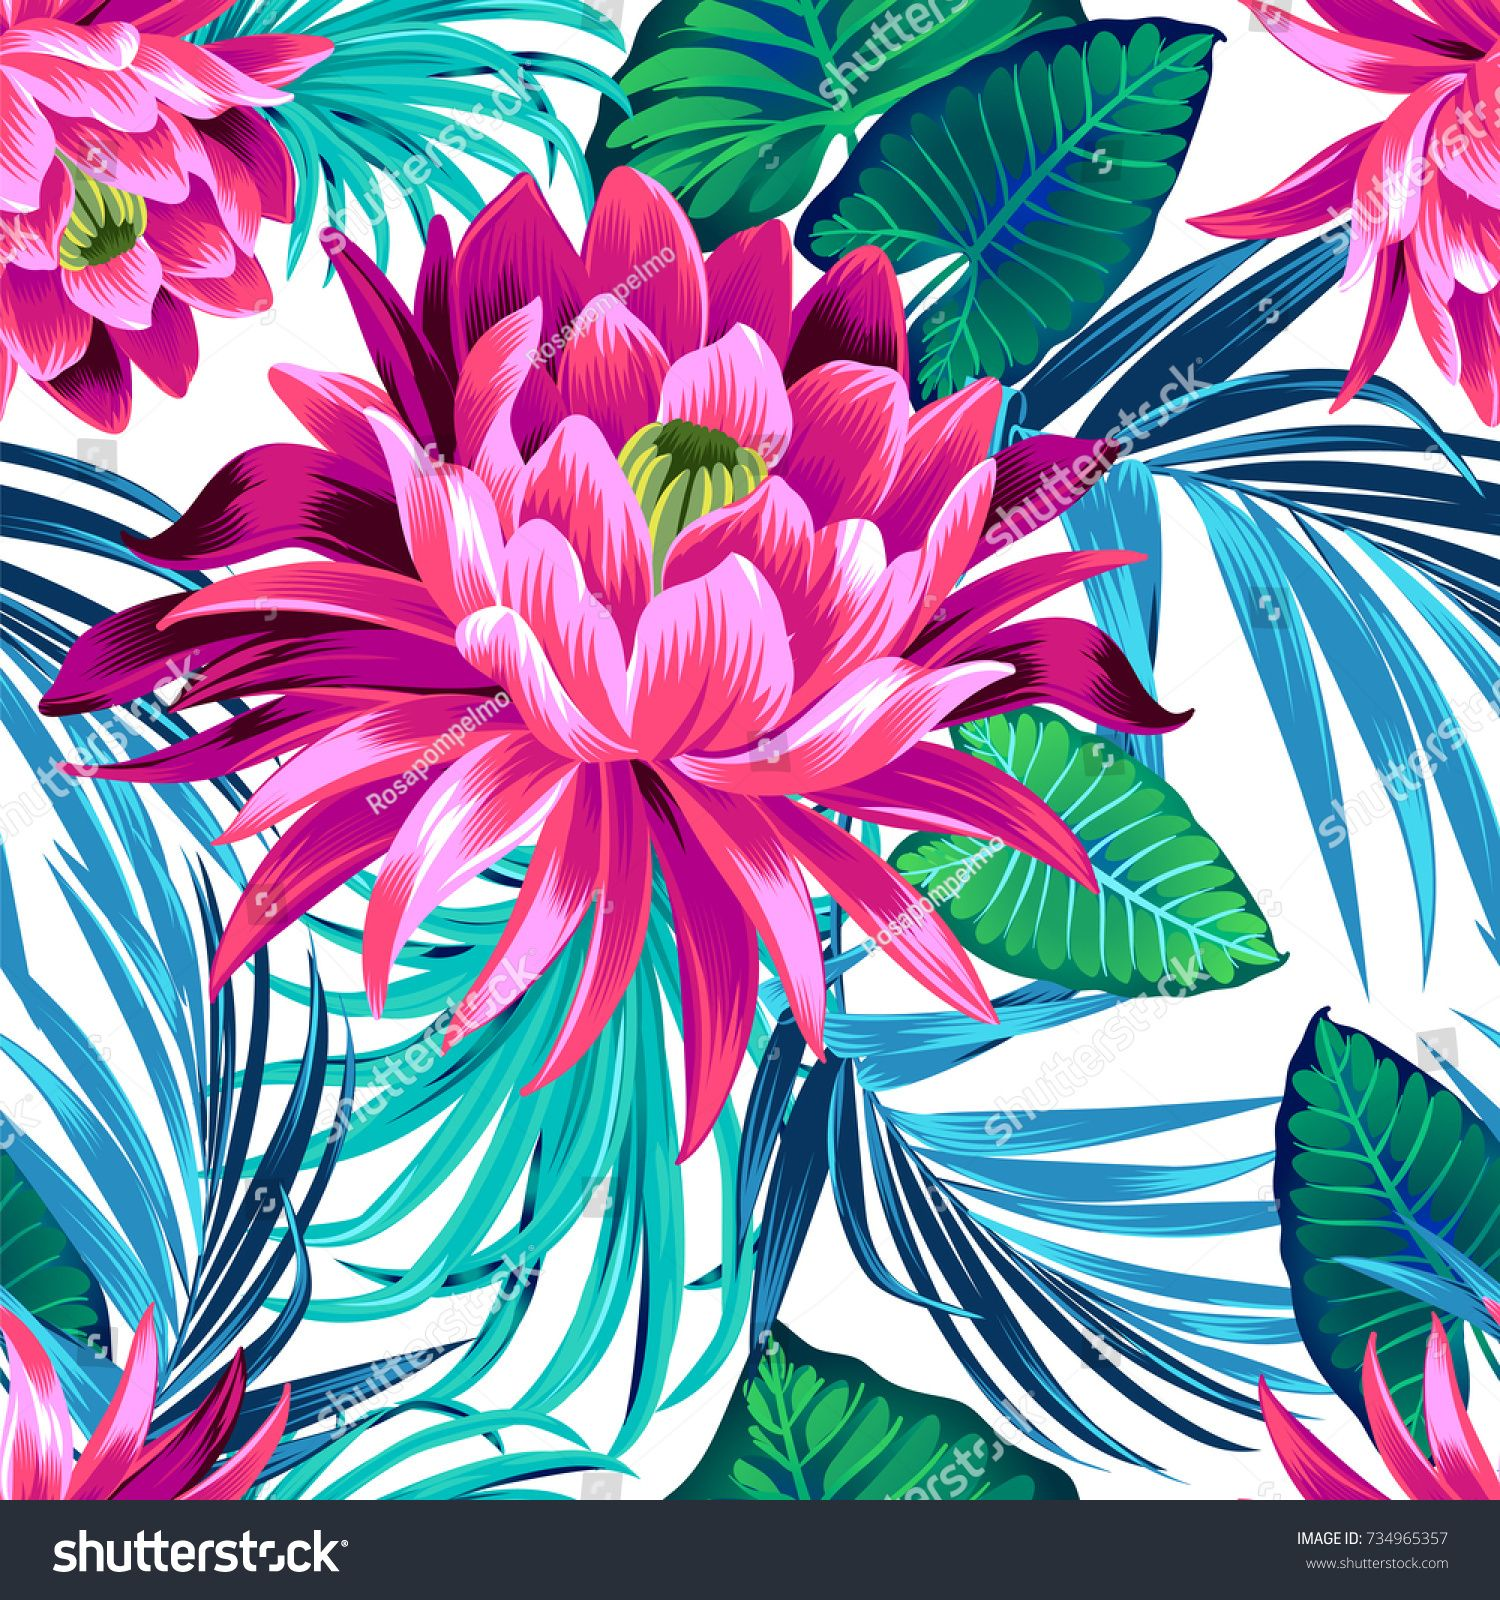 vector tropical pattern with waterlily, lotus flower